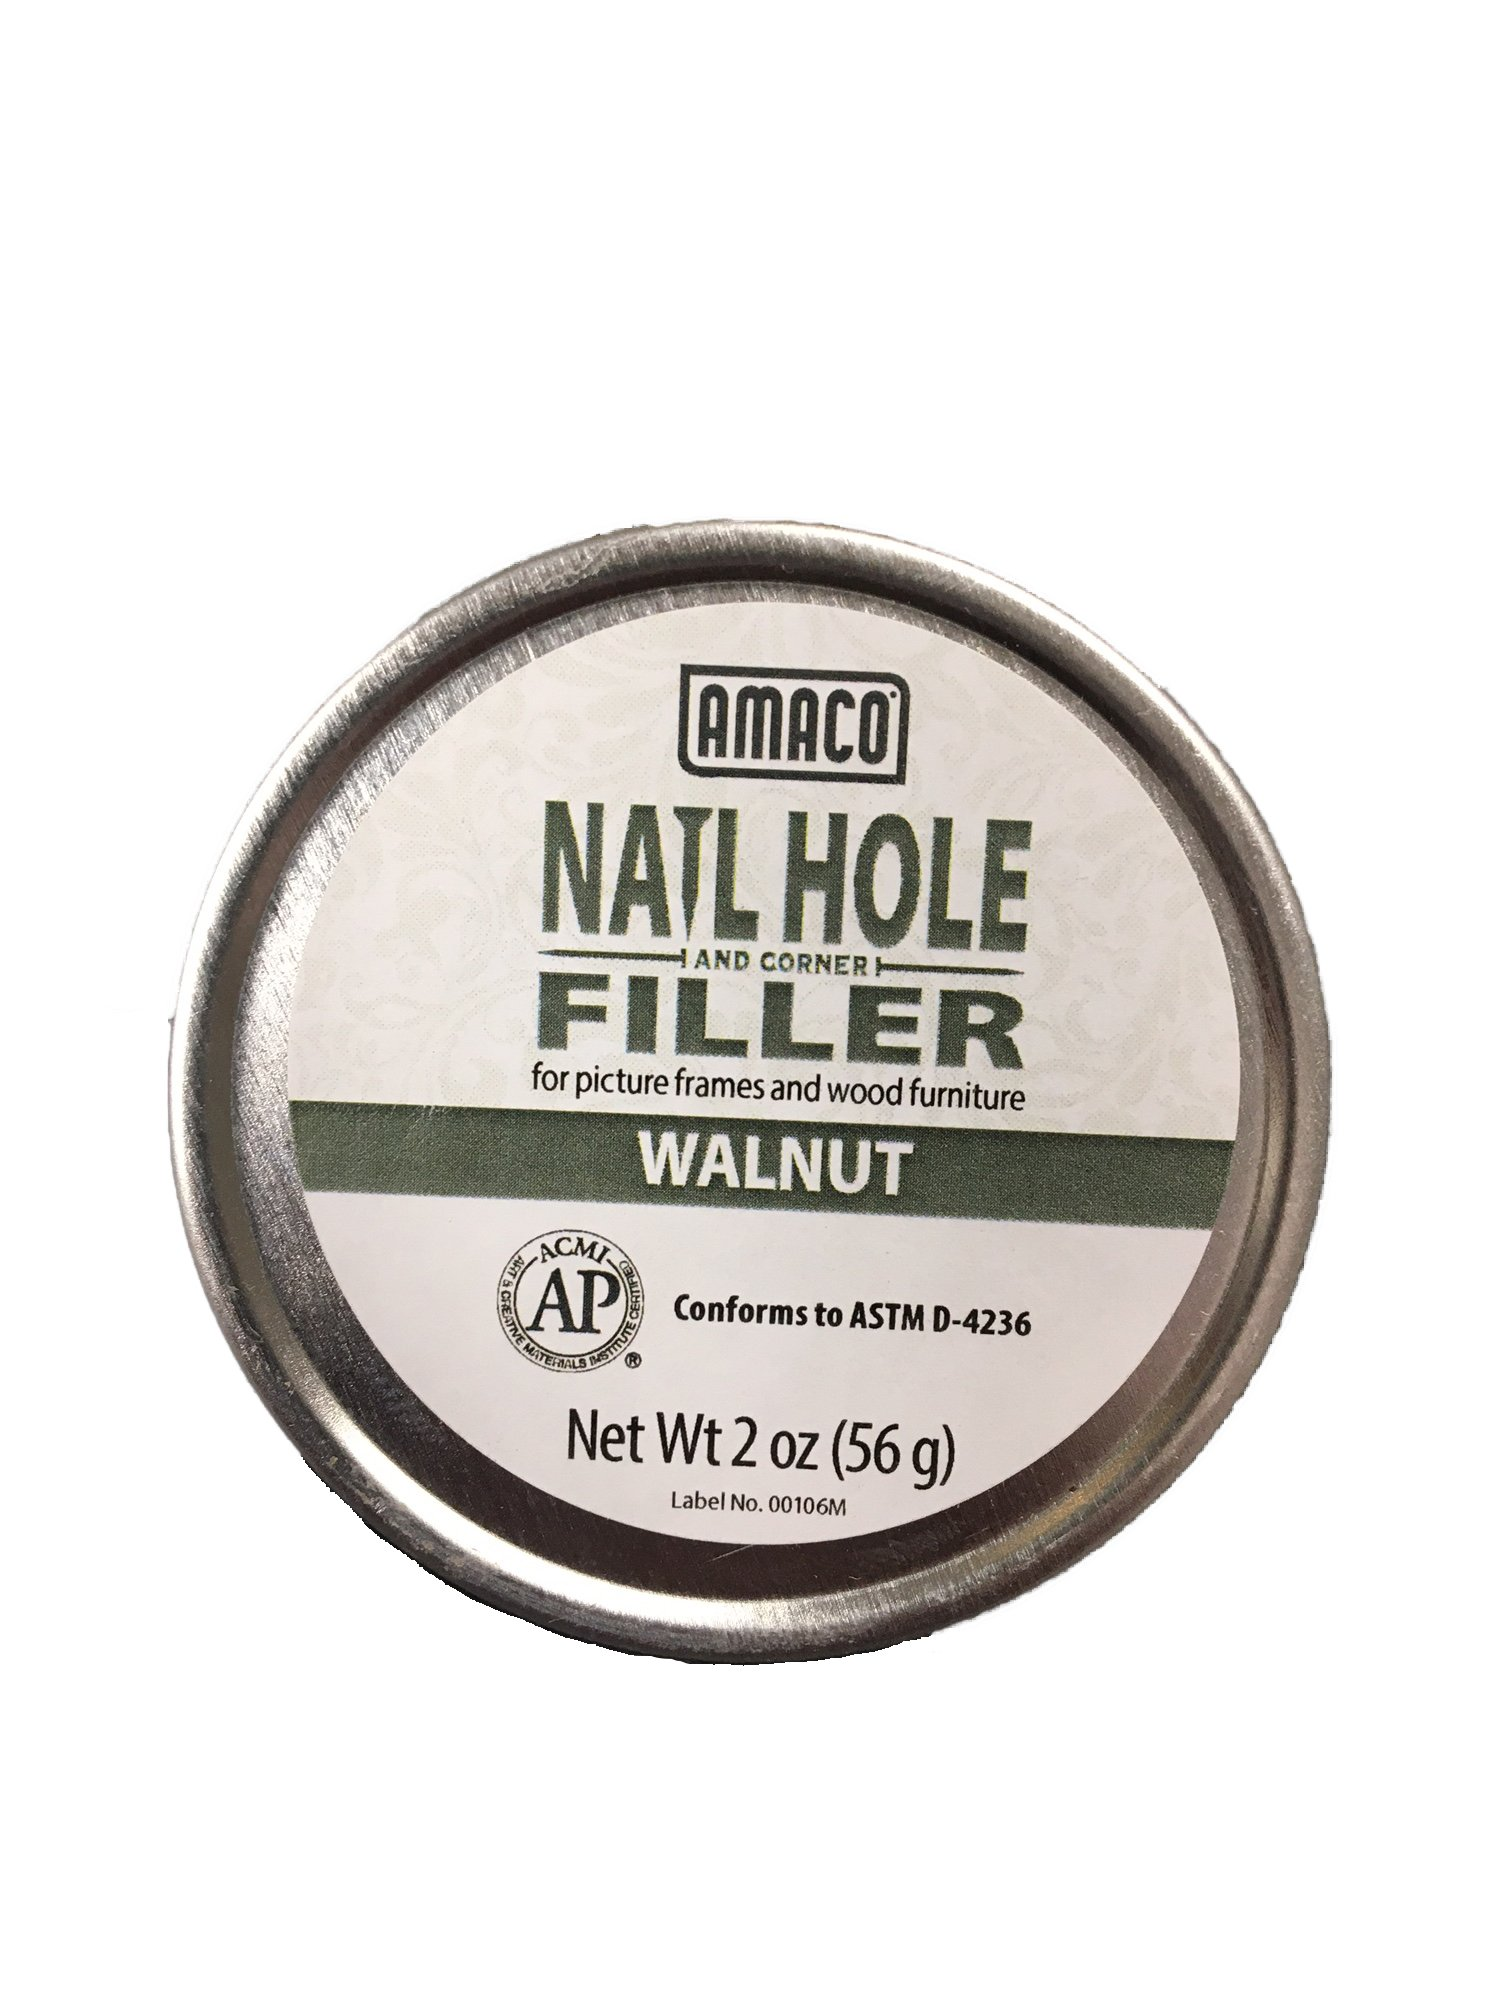 Nail Hole and Corner Filler - Walnut